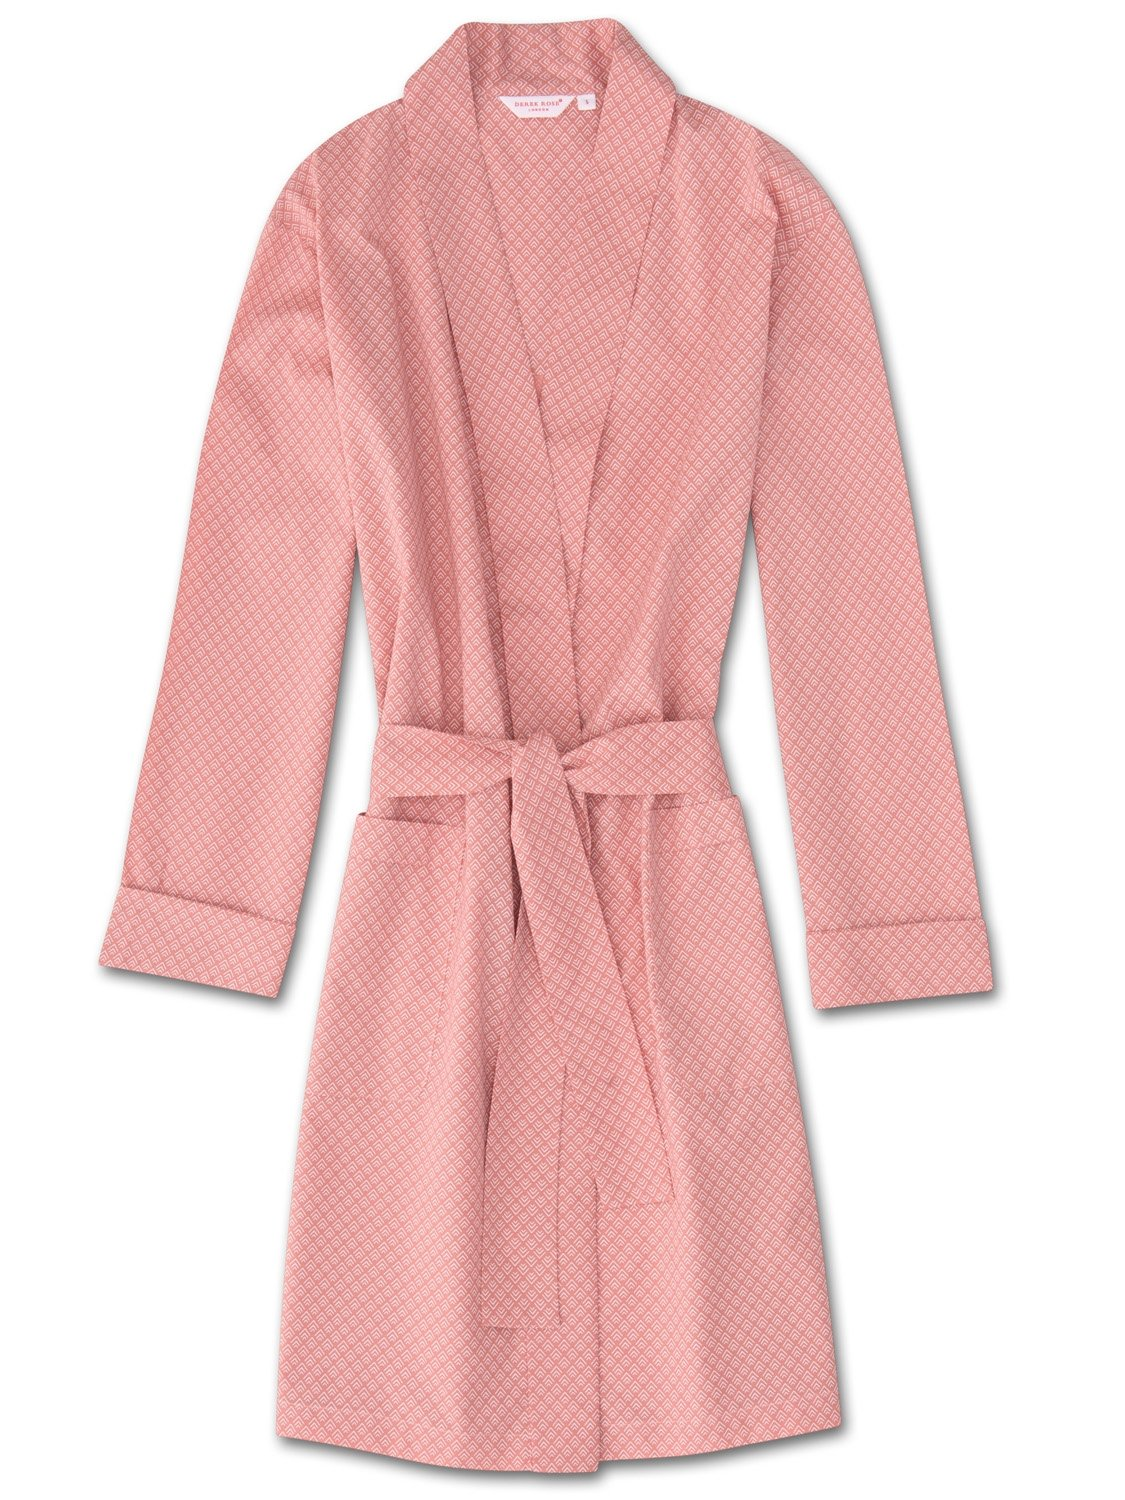 Women's Dressing Gown Nelson 66 Cotton Batiste Pink